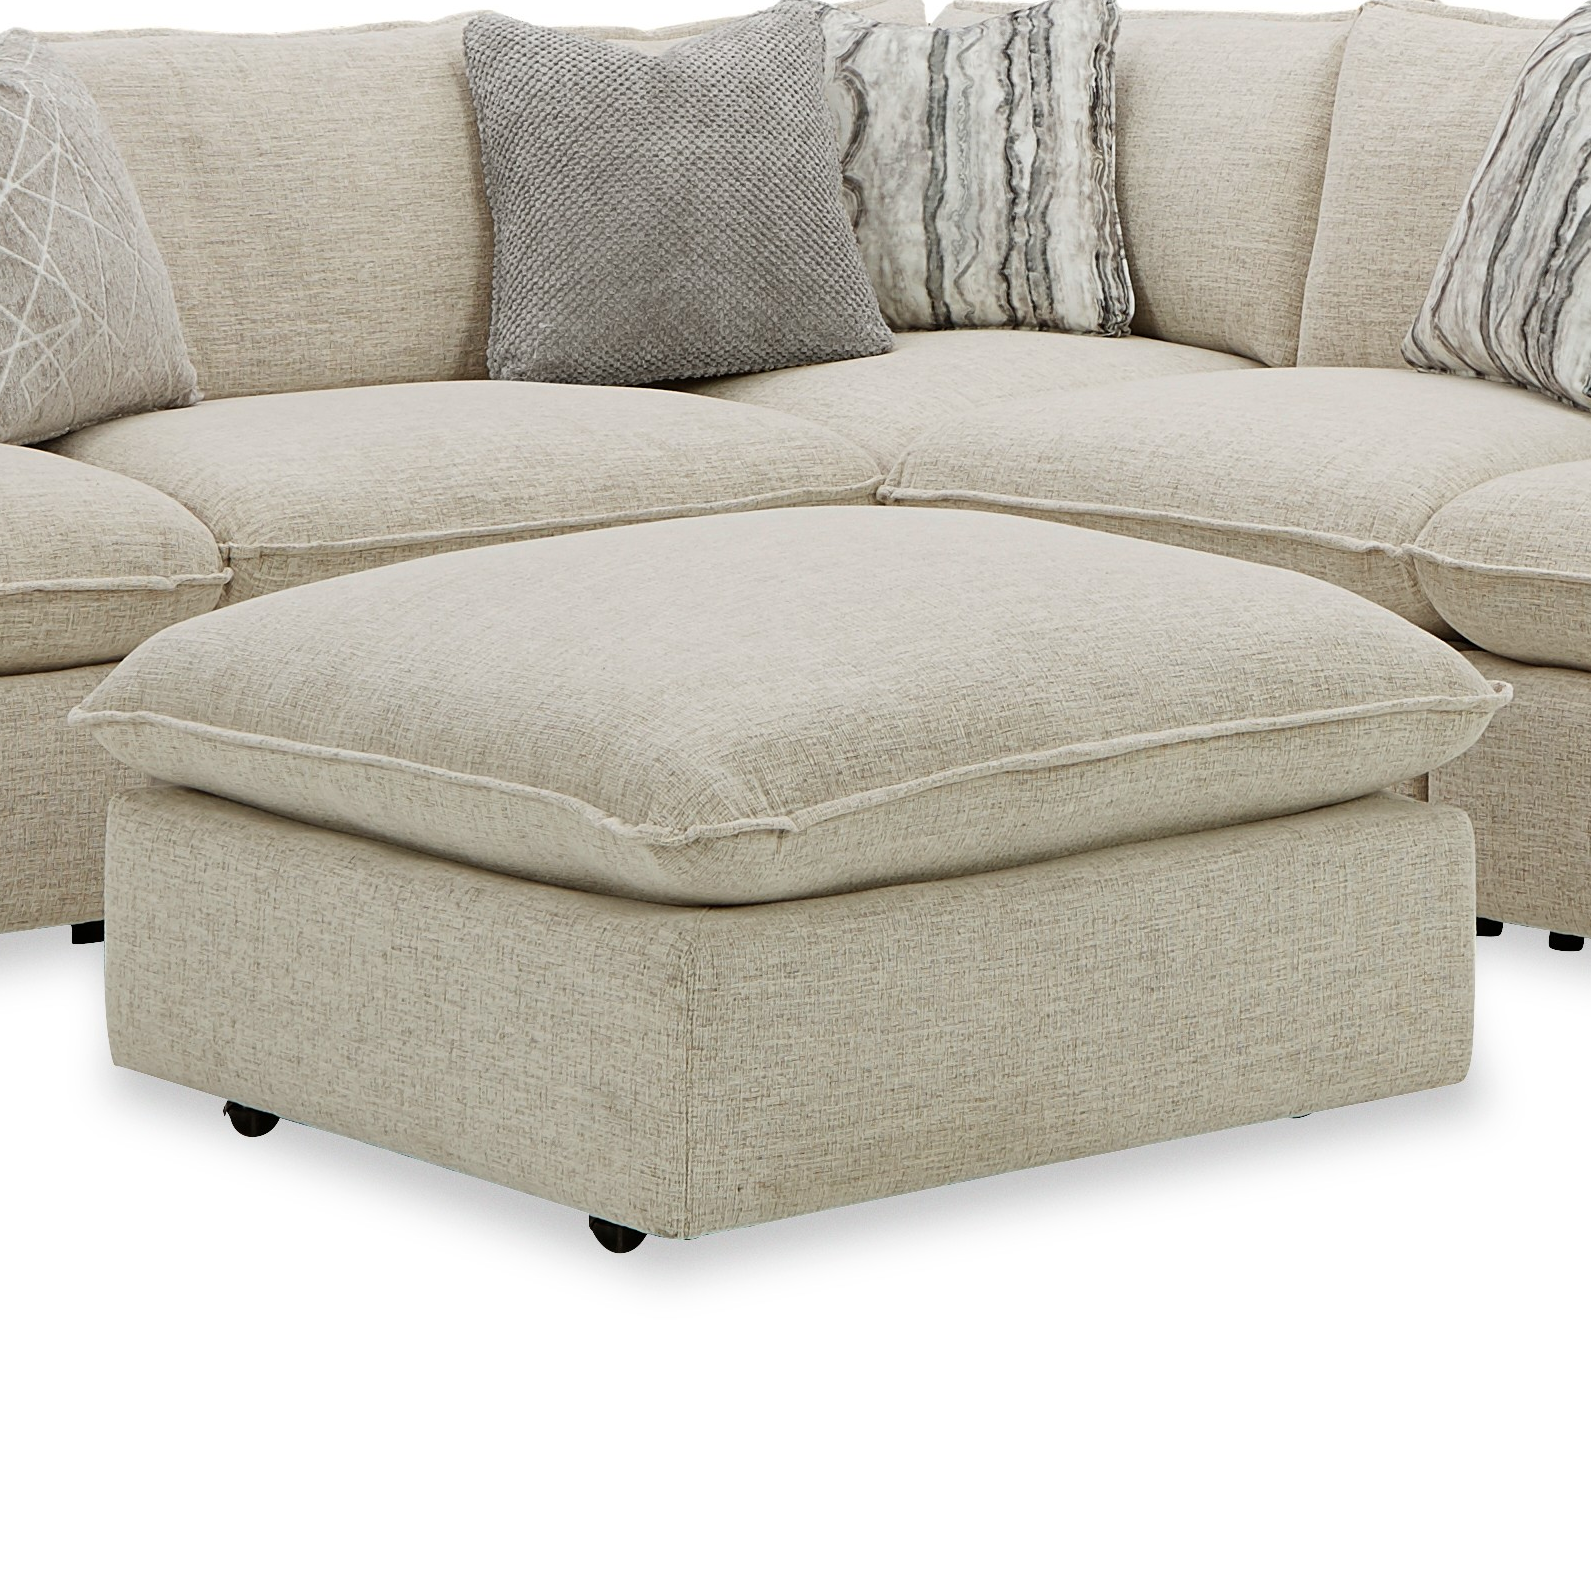 712741BD Bumper Ottoman by Craftmaster at Esprit Decor Home Furnishings